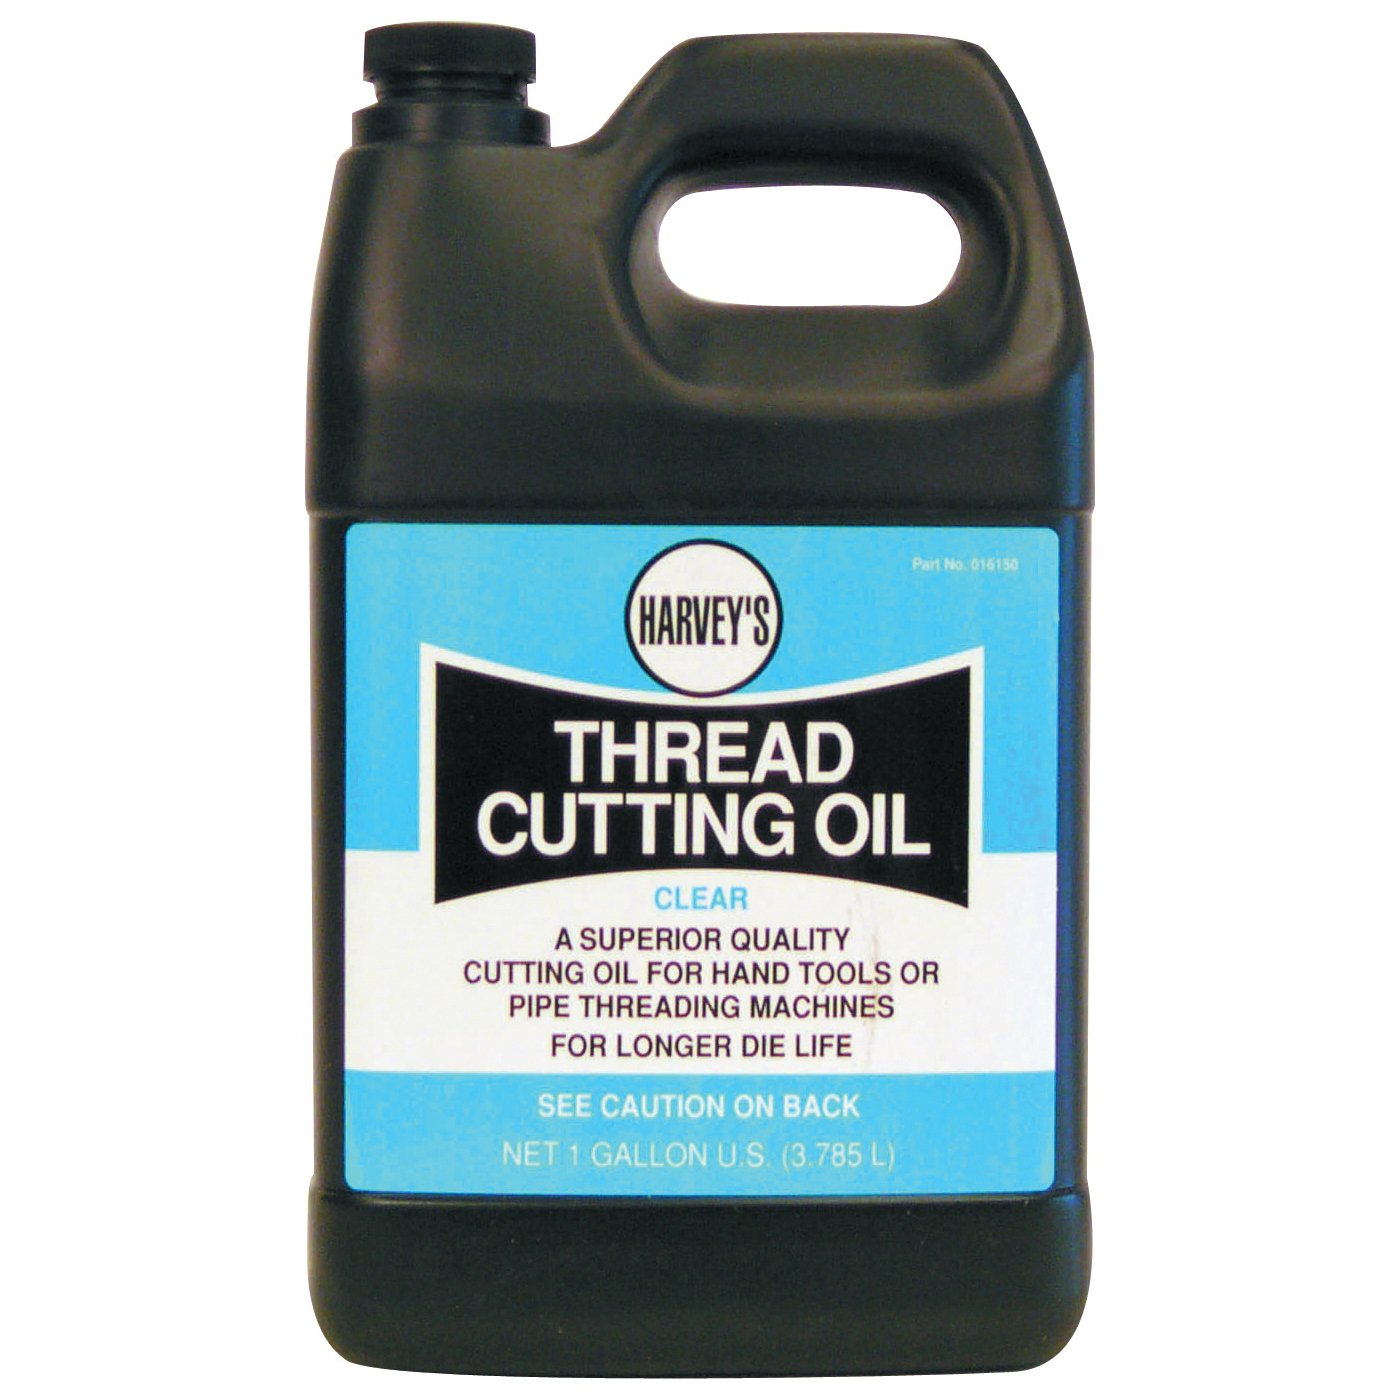 Picture of HARVEY 016150 Thread Cutting Oil, 1 gal Package, Jug, Clear